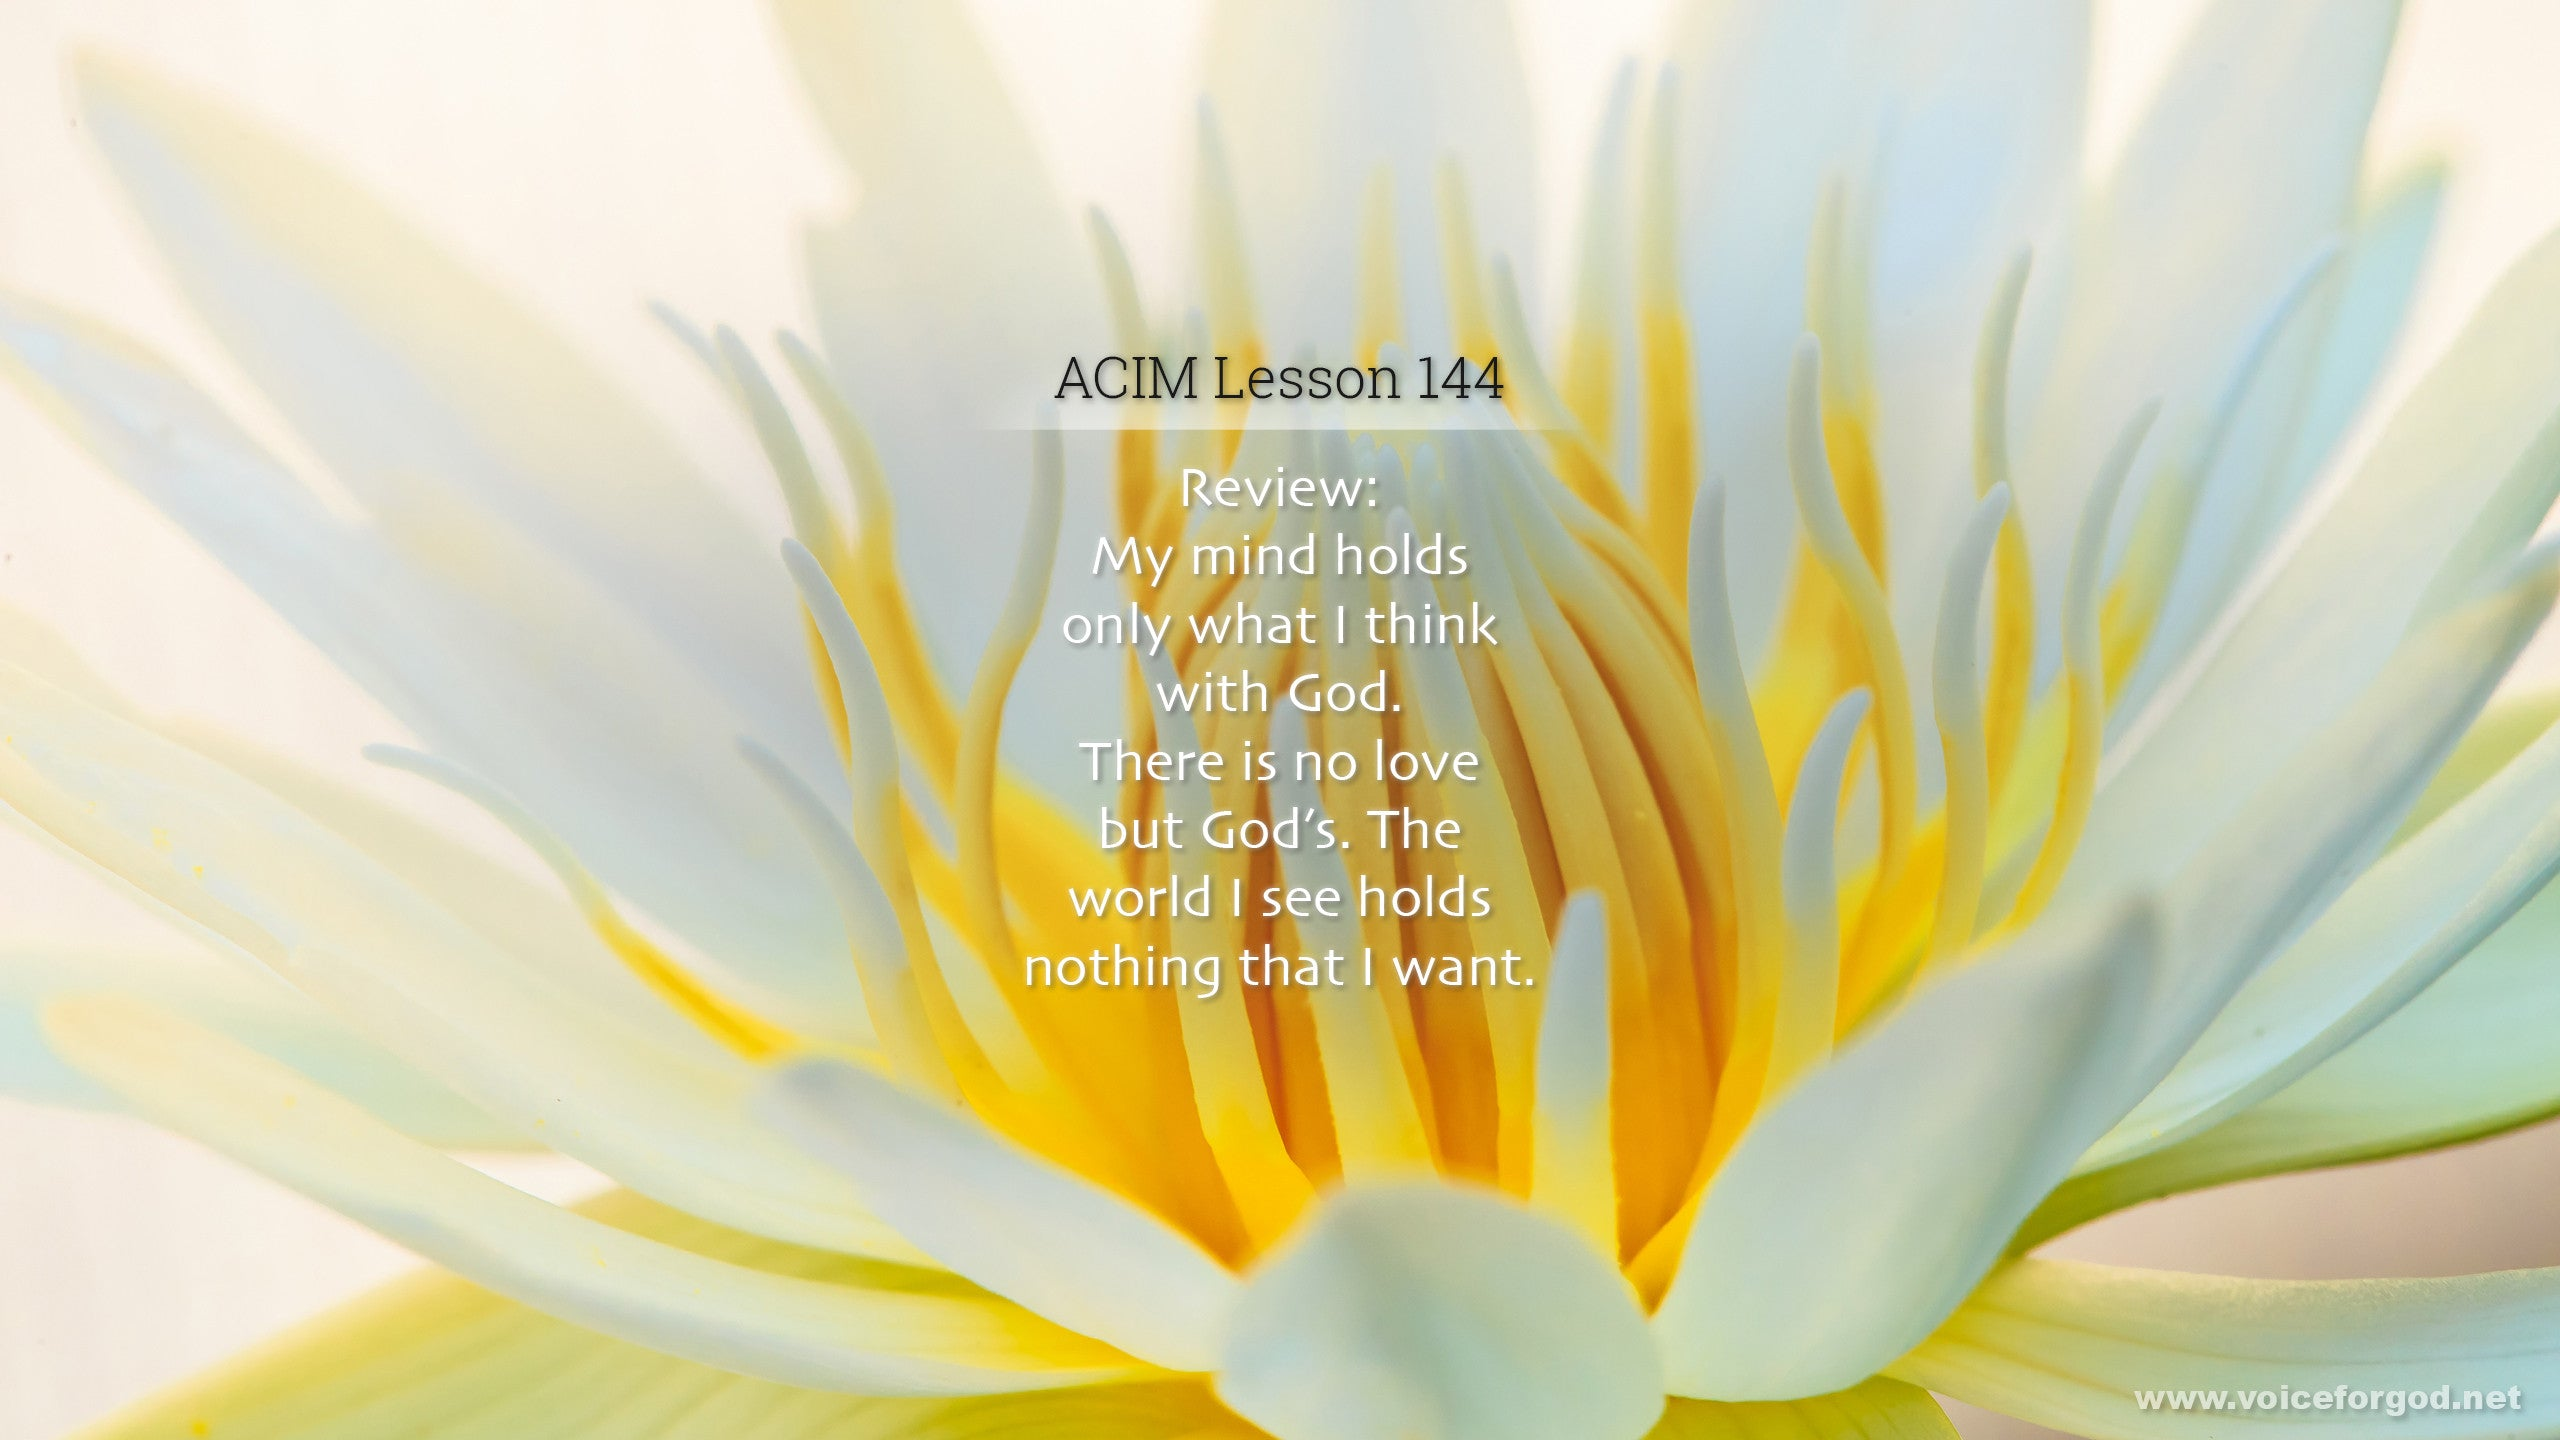 ACIM Lesson 144 - A Course in Miracles Workbook Lesson 144